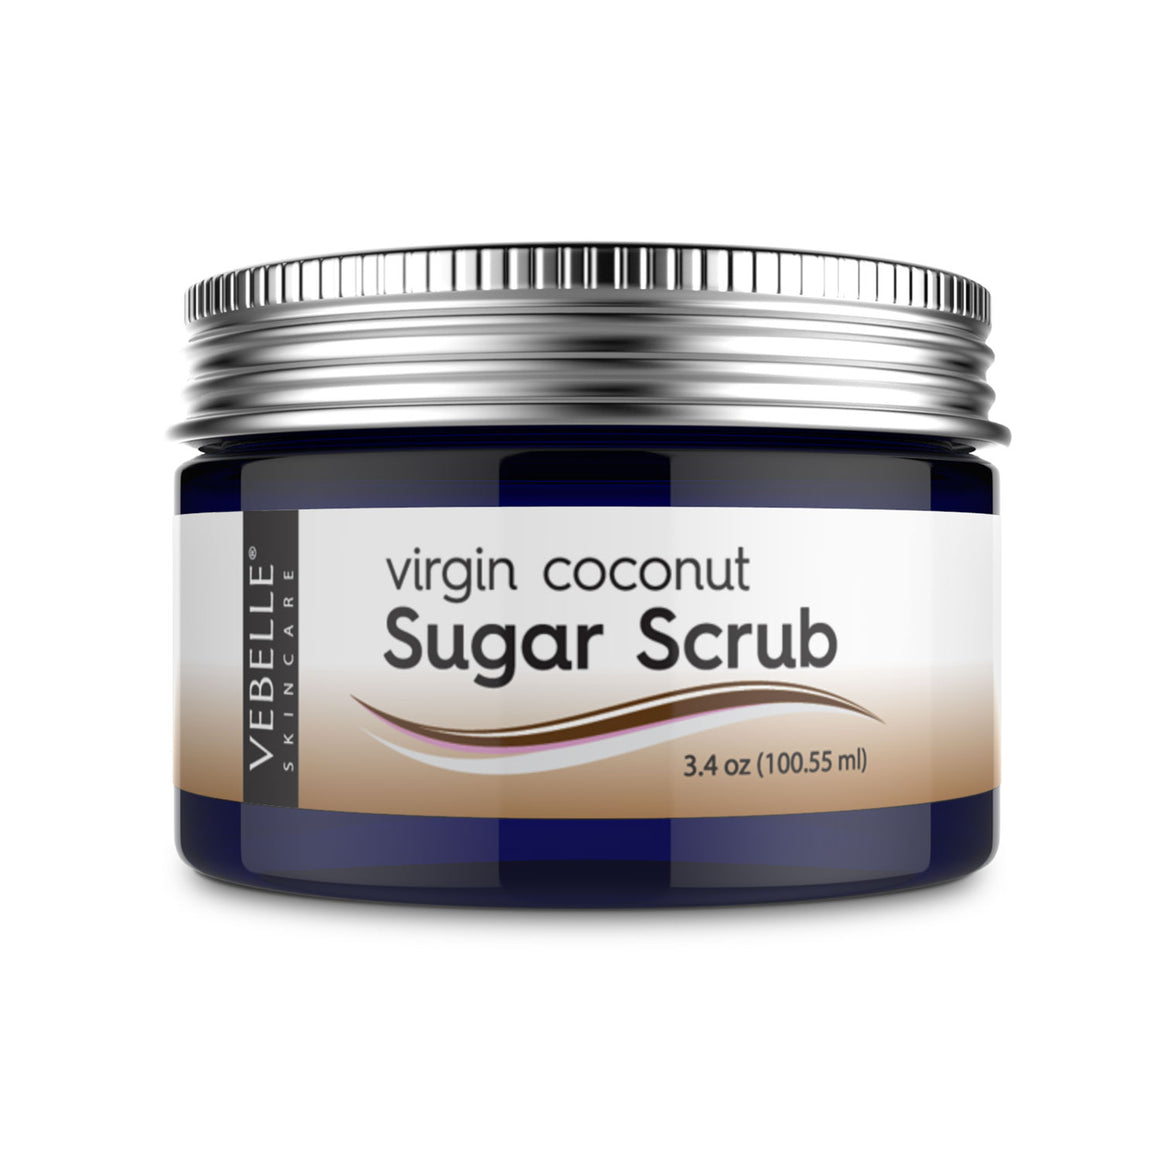 Virgin Coconut Sugar Scrub by VEBELLE the Anti Aging Company